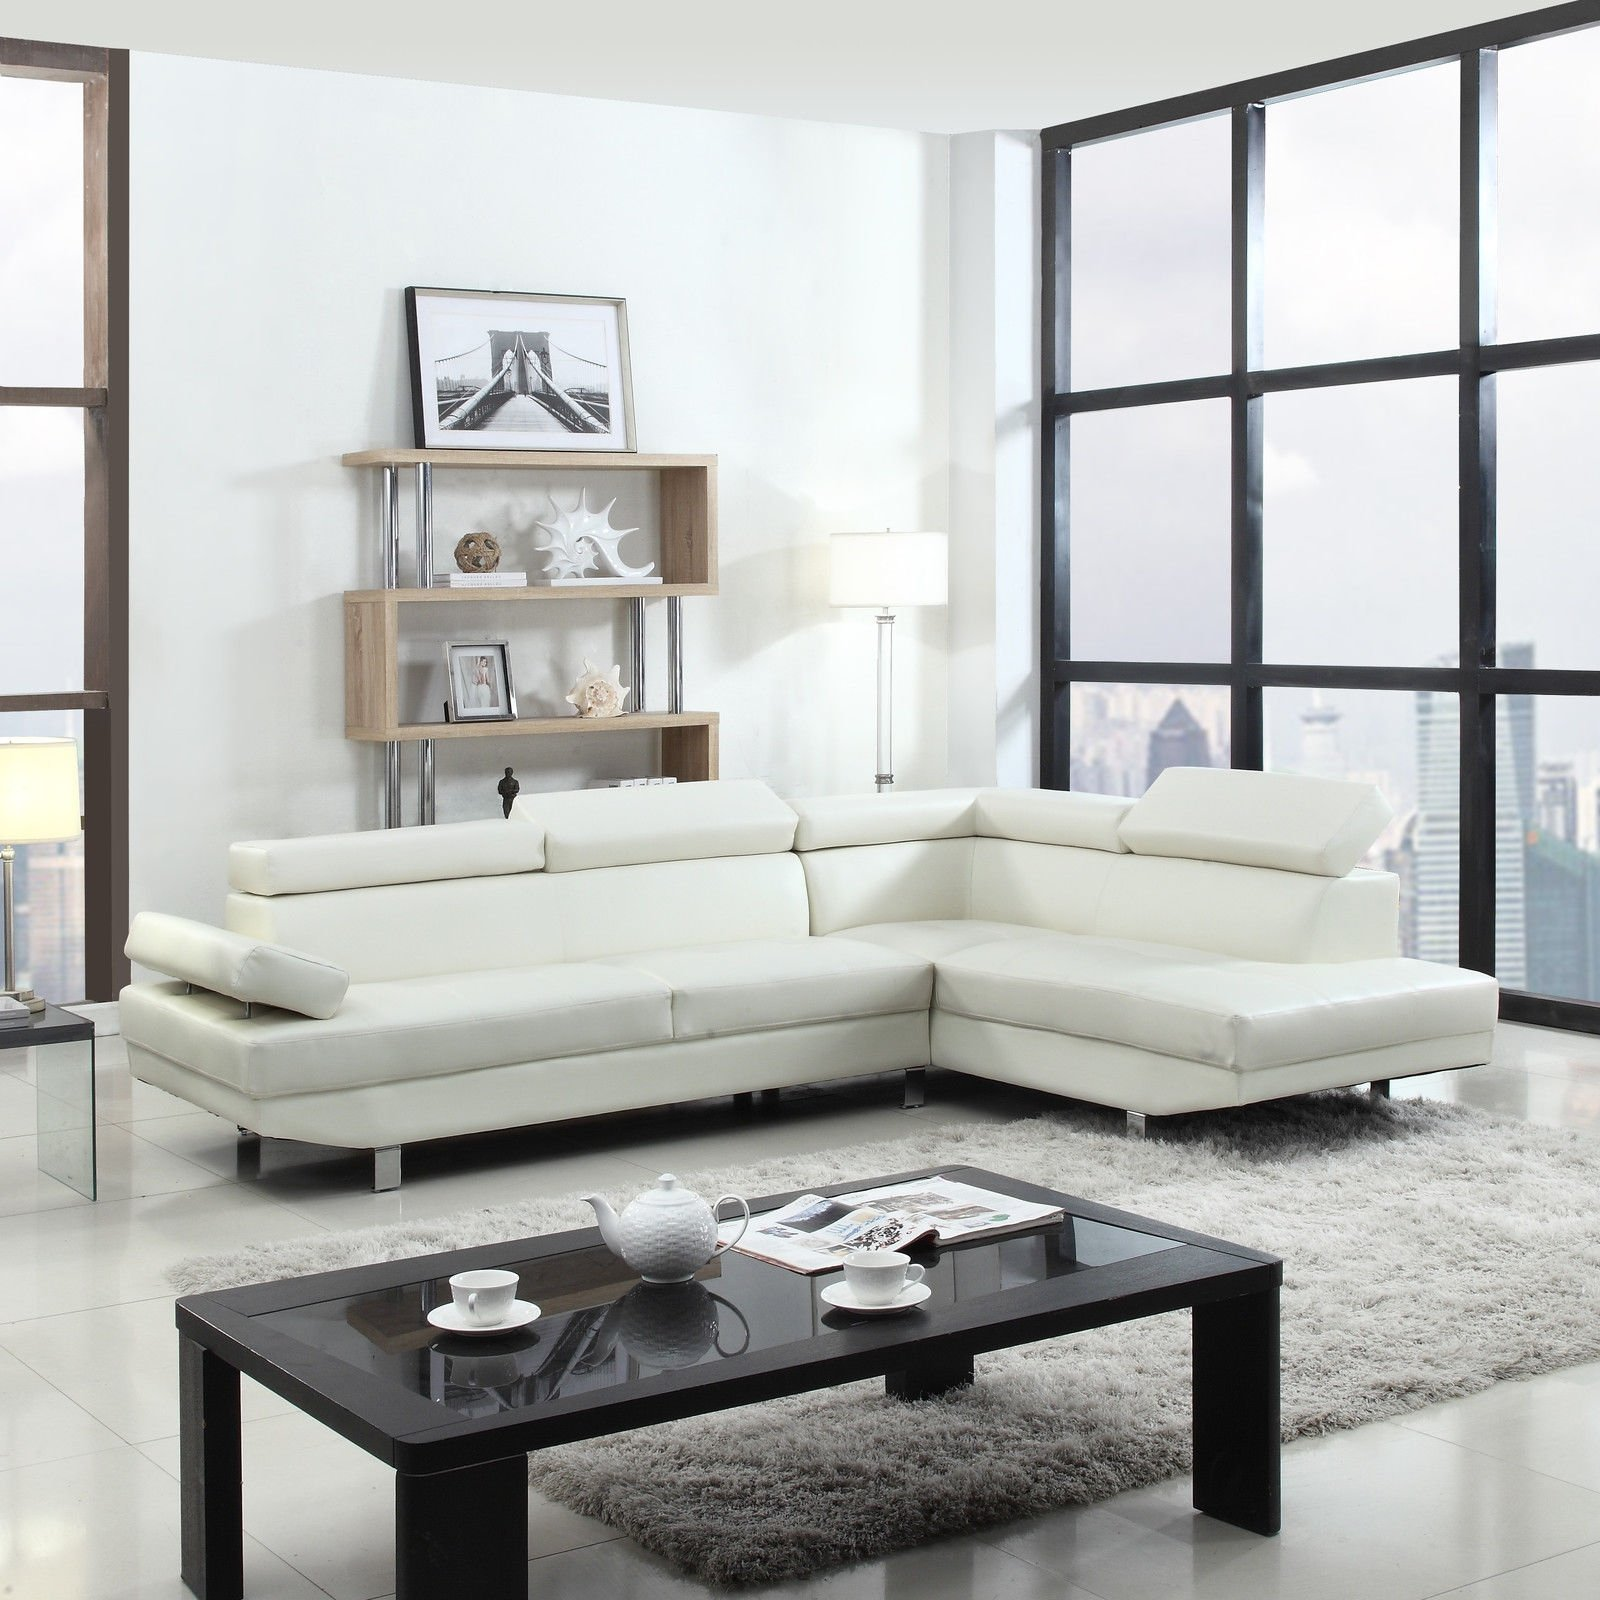 Details about Modern Contemporary White Faux Leather Sectional Sofa, Living  Room Set